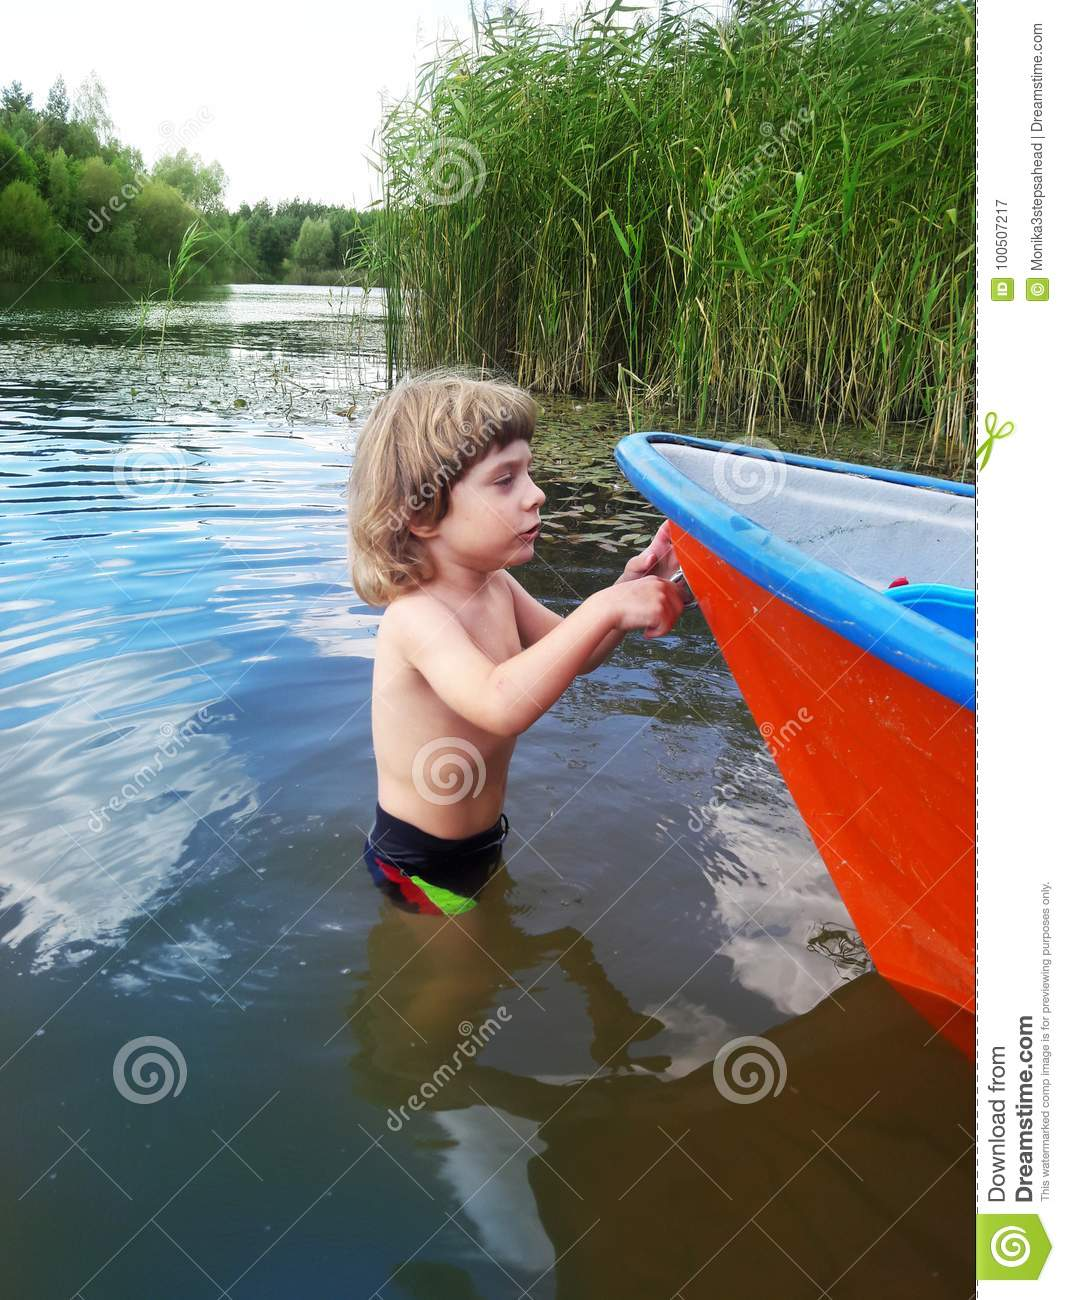 Three years old boy and a boat in a water